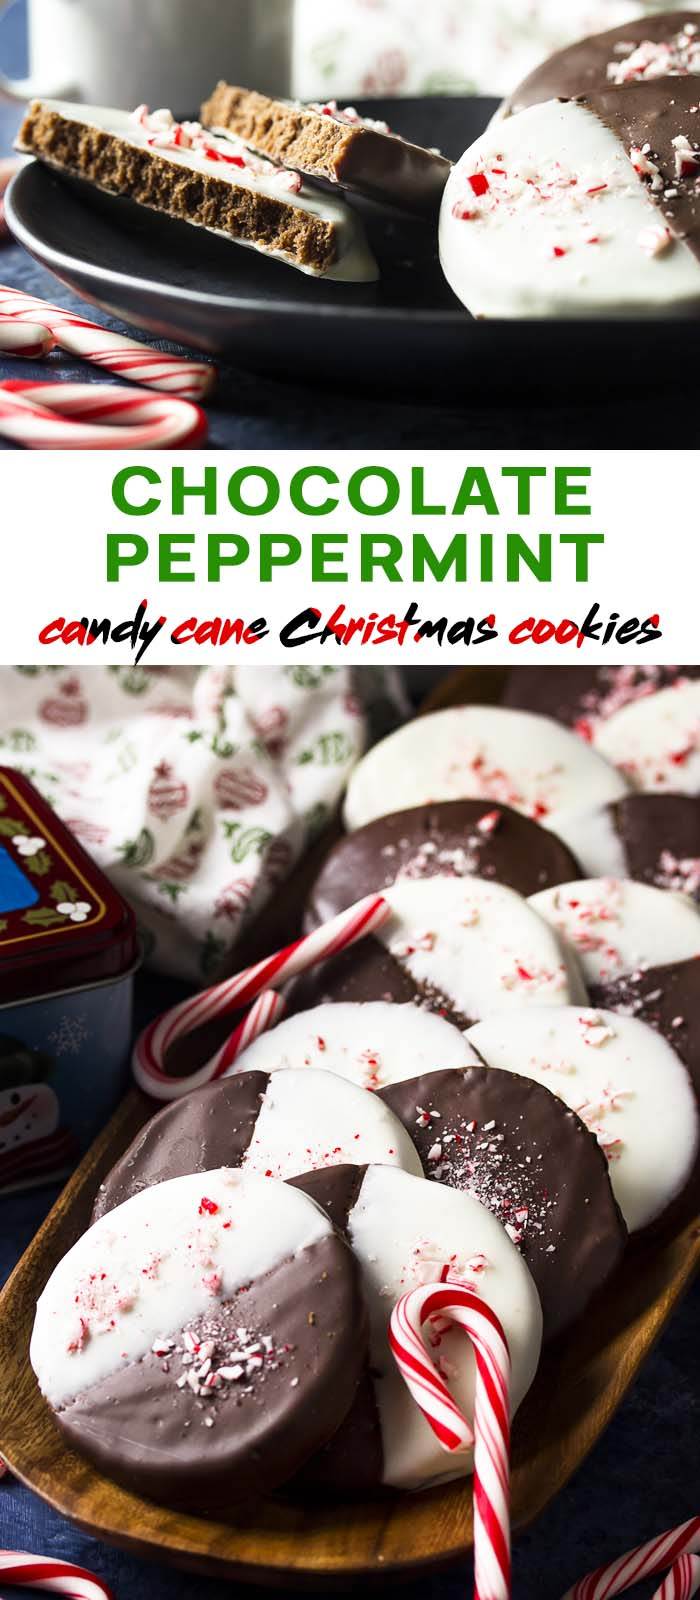 A tray and plate of cookies with text overlay - Chocolate Peppermint Christmas Cookies.